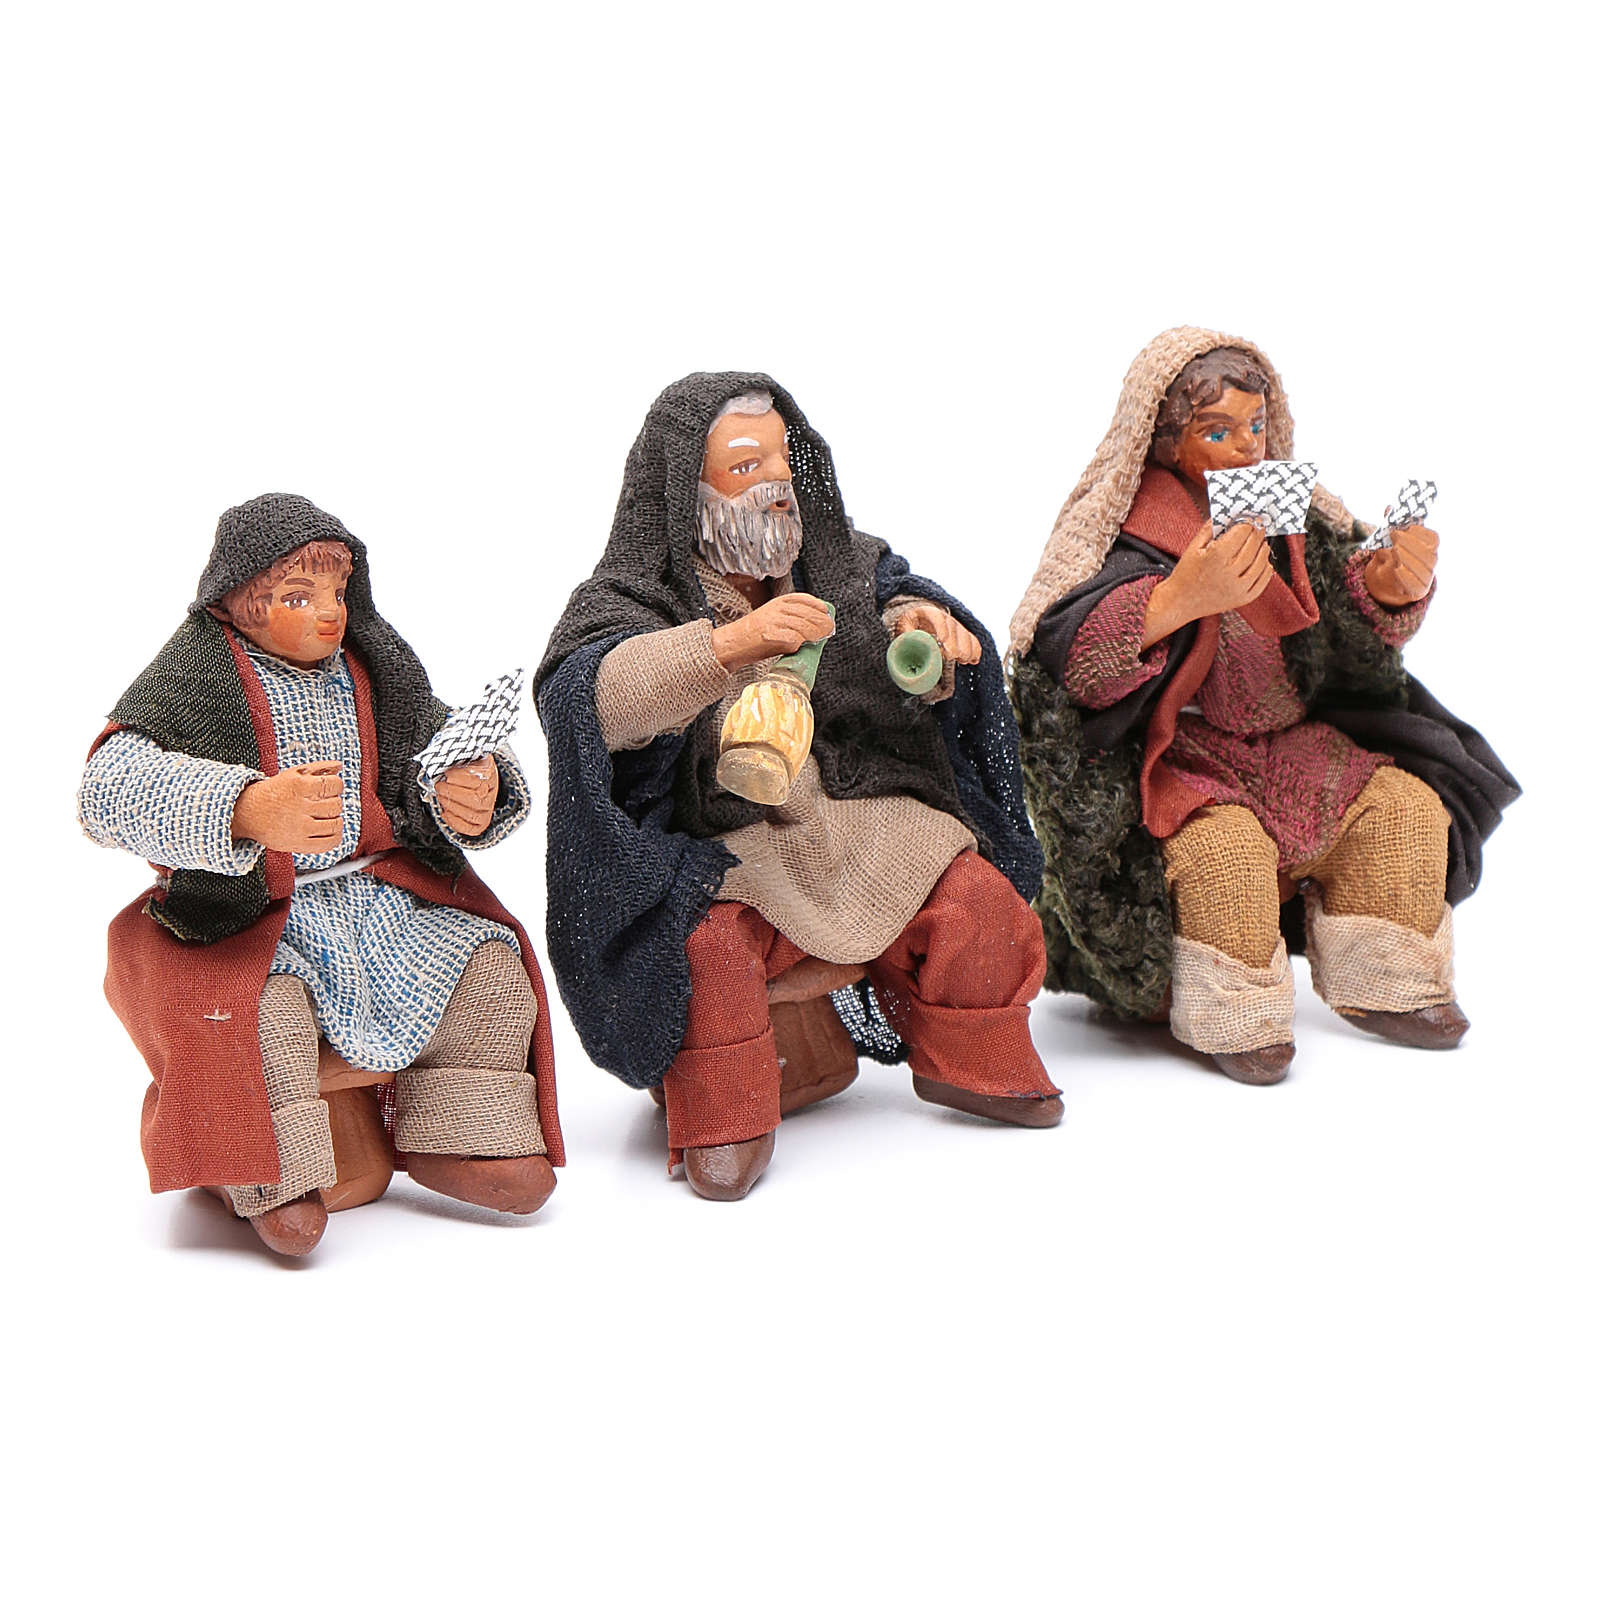 Cards players 3 figurines 10cm, Nativity Scene 4